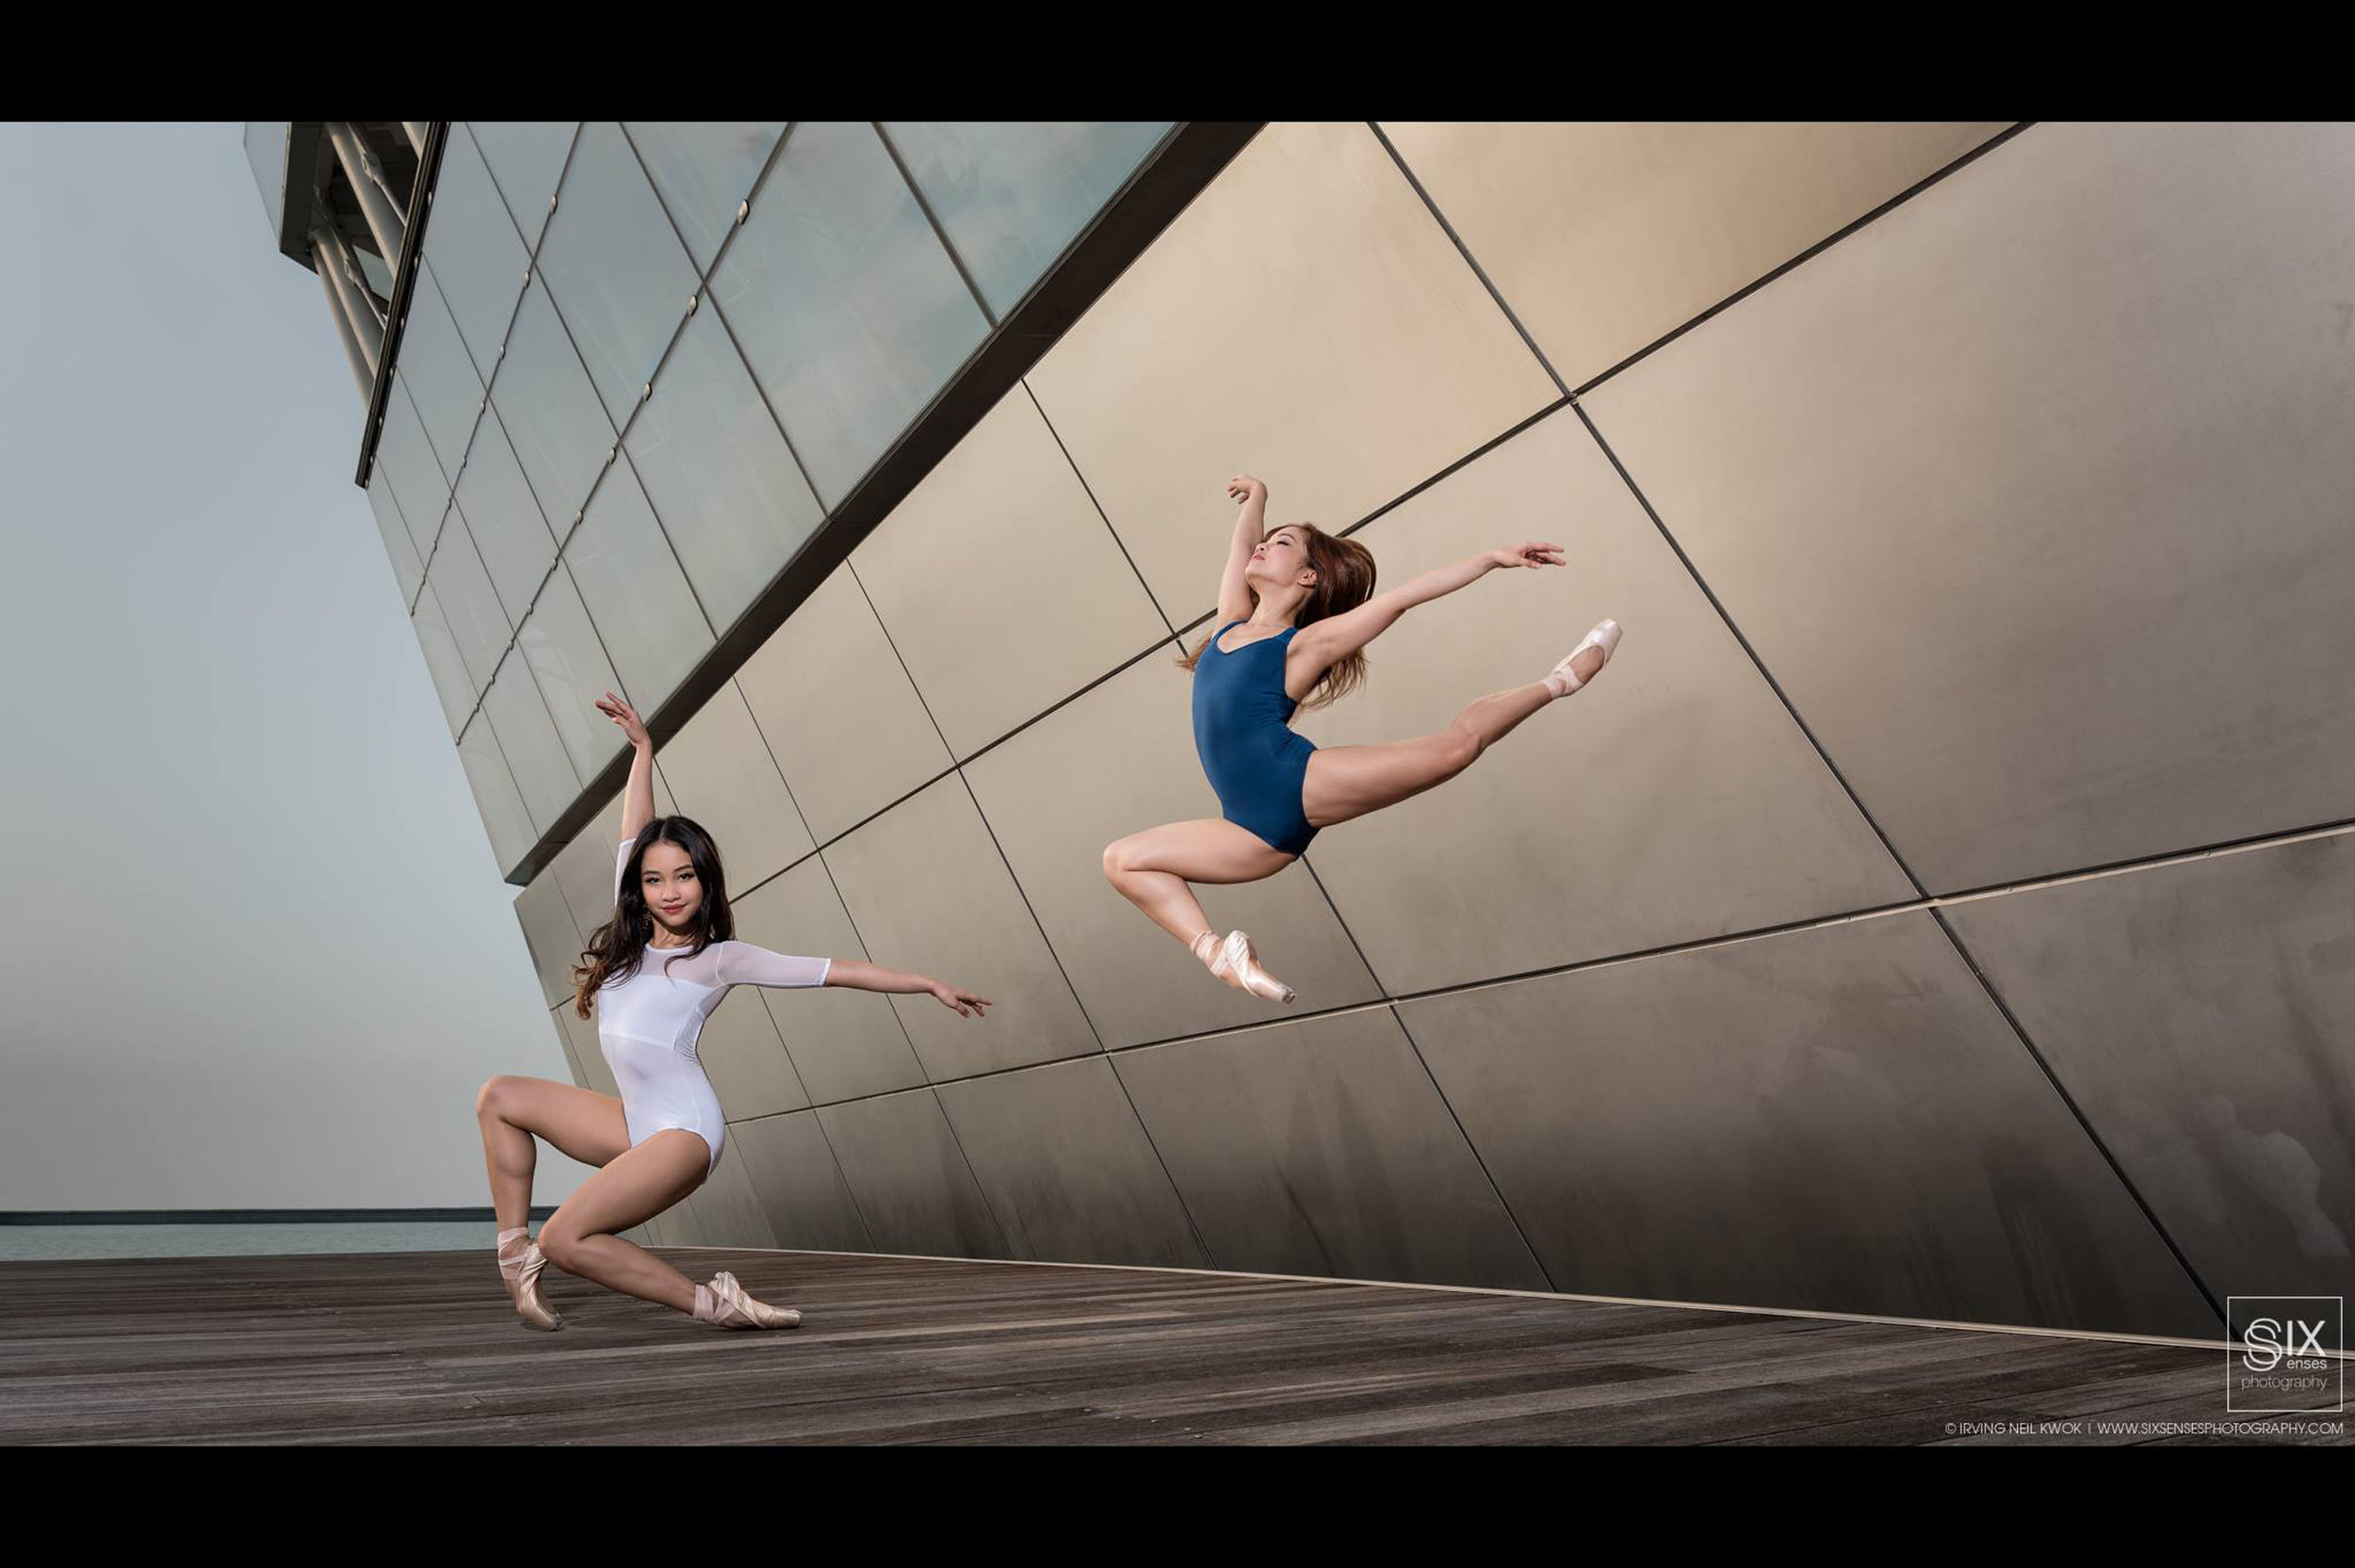 The twins show their winning forms in another photo shoot in Singapore.     Photo by Irving Neil Kuok